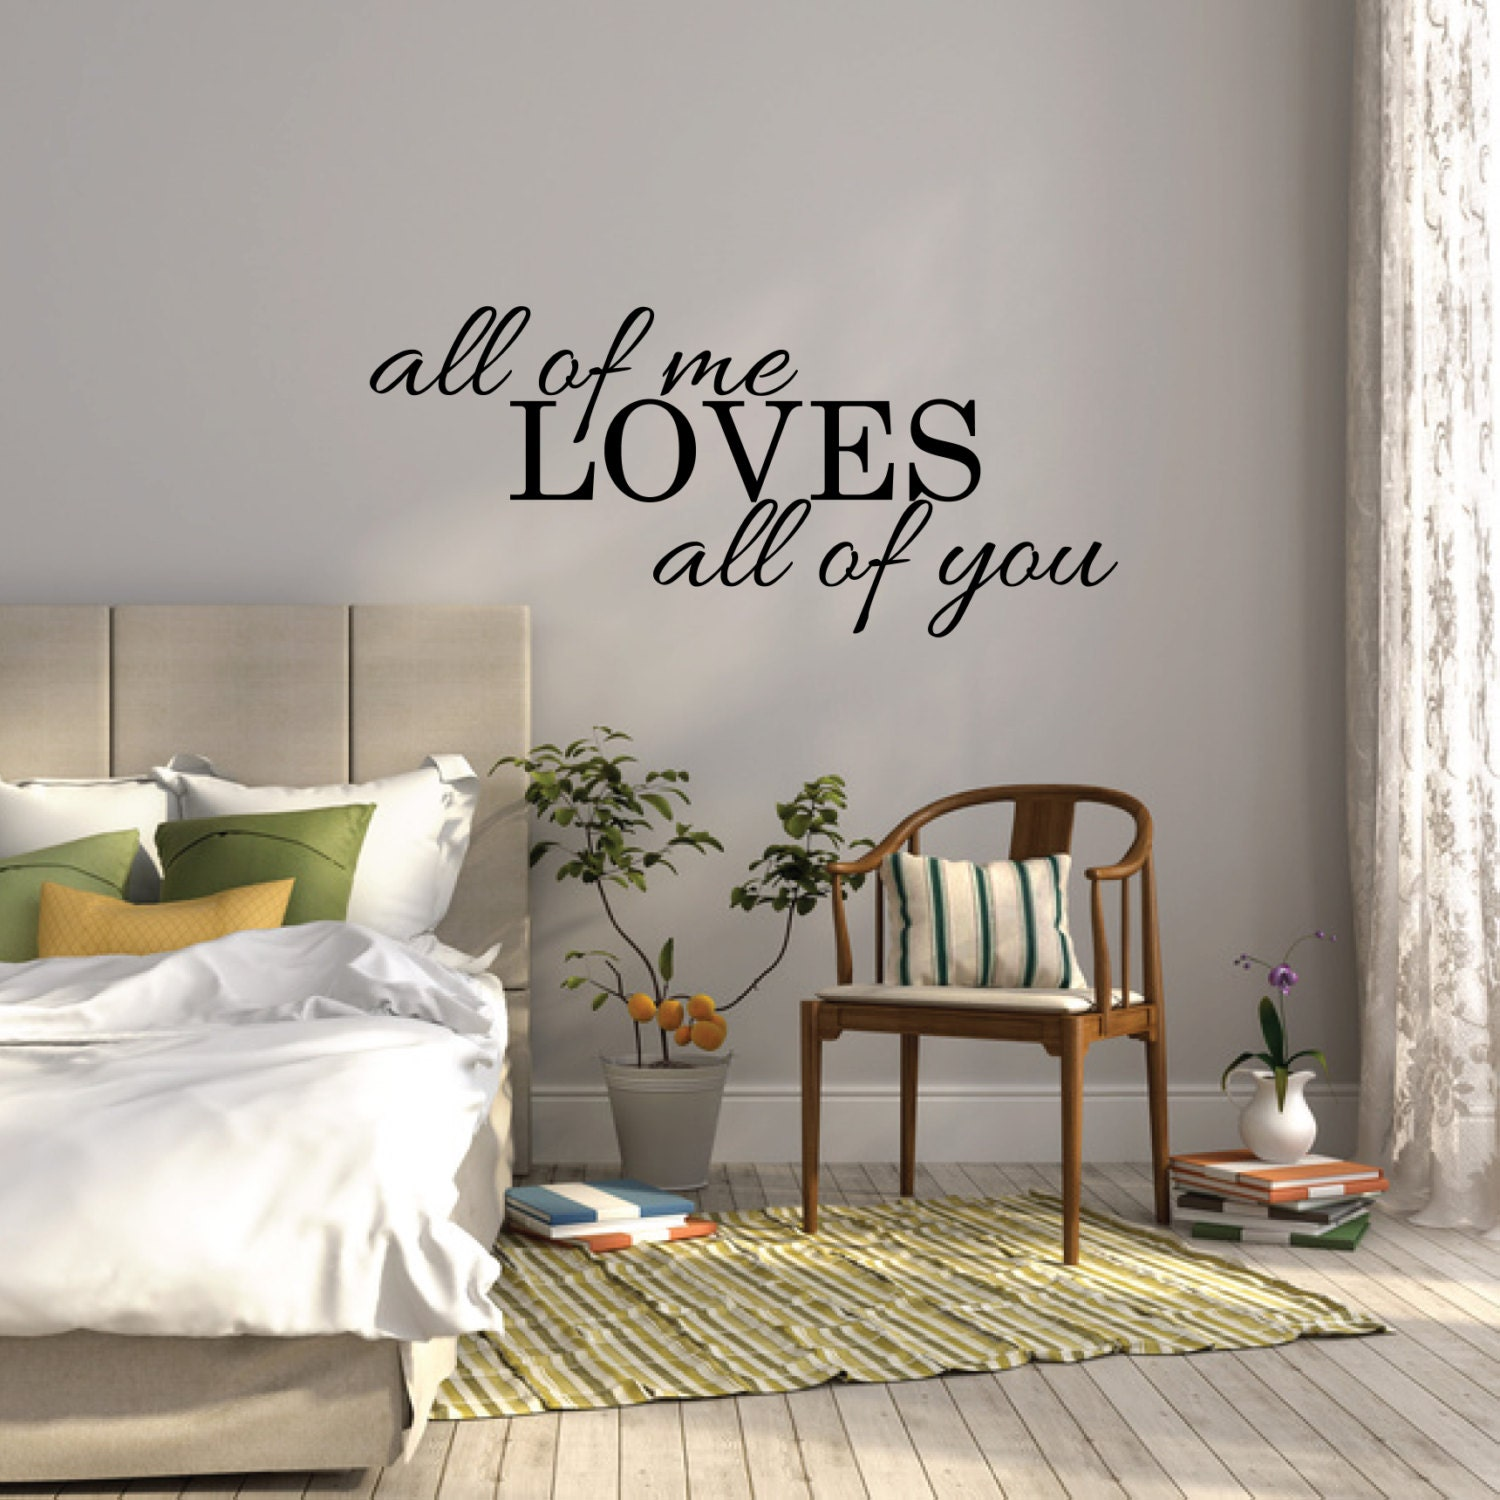 all of me loves all of you wall sticker bedroom wall decal. Black Bedroom Furniture Sets. Home Design Ideas